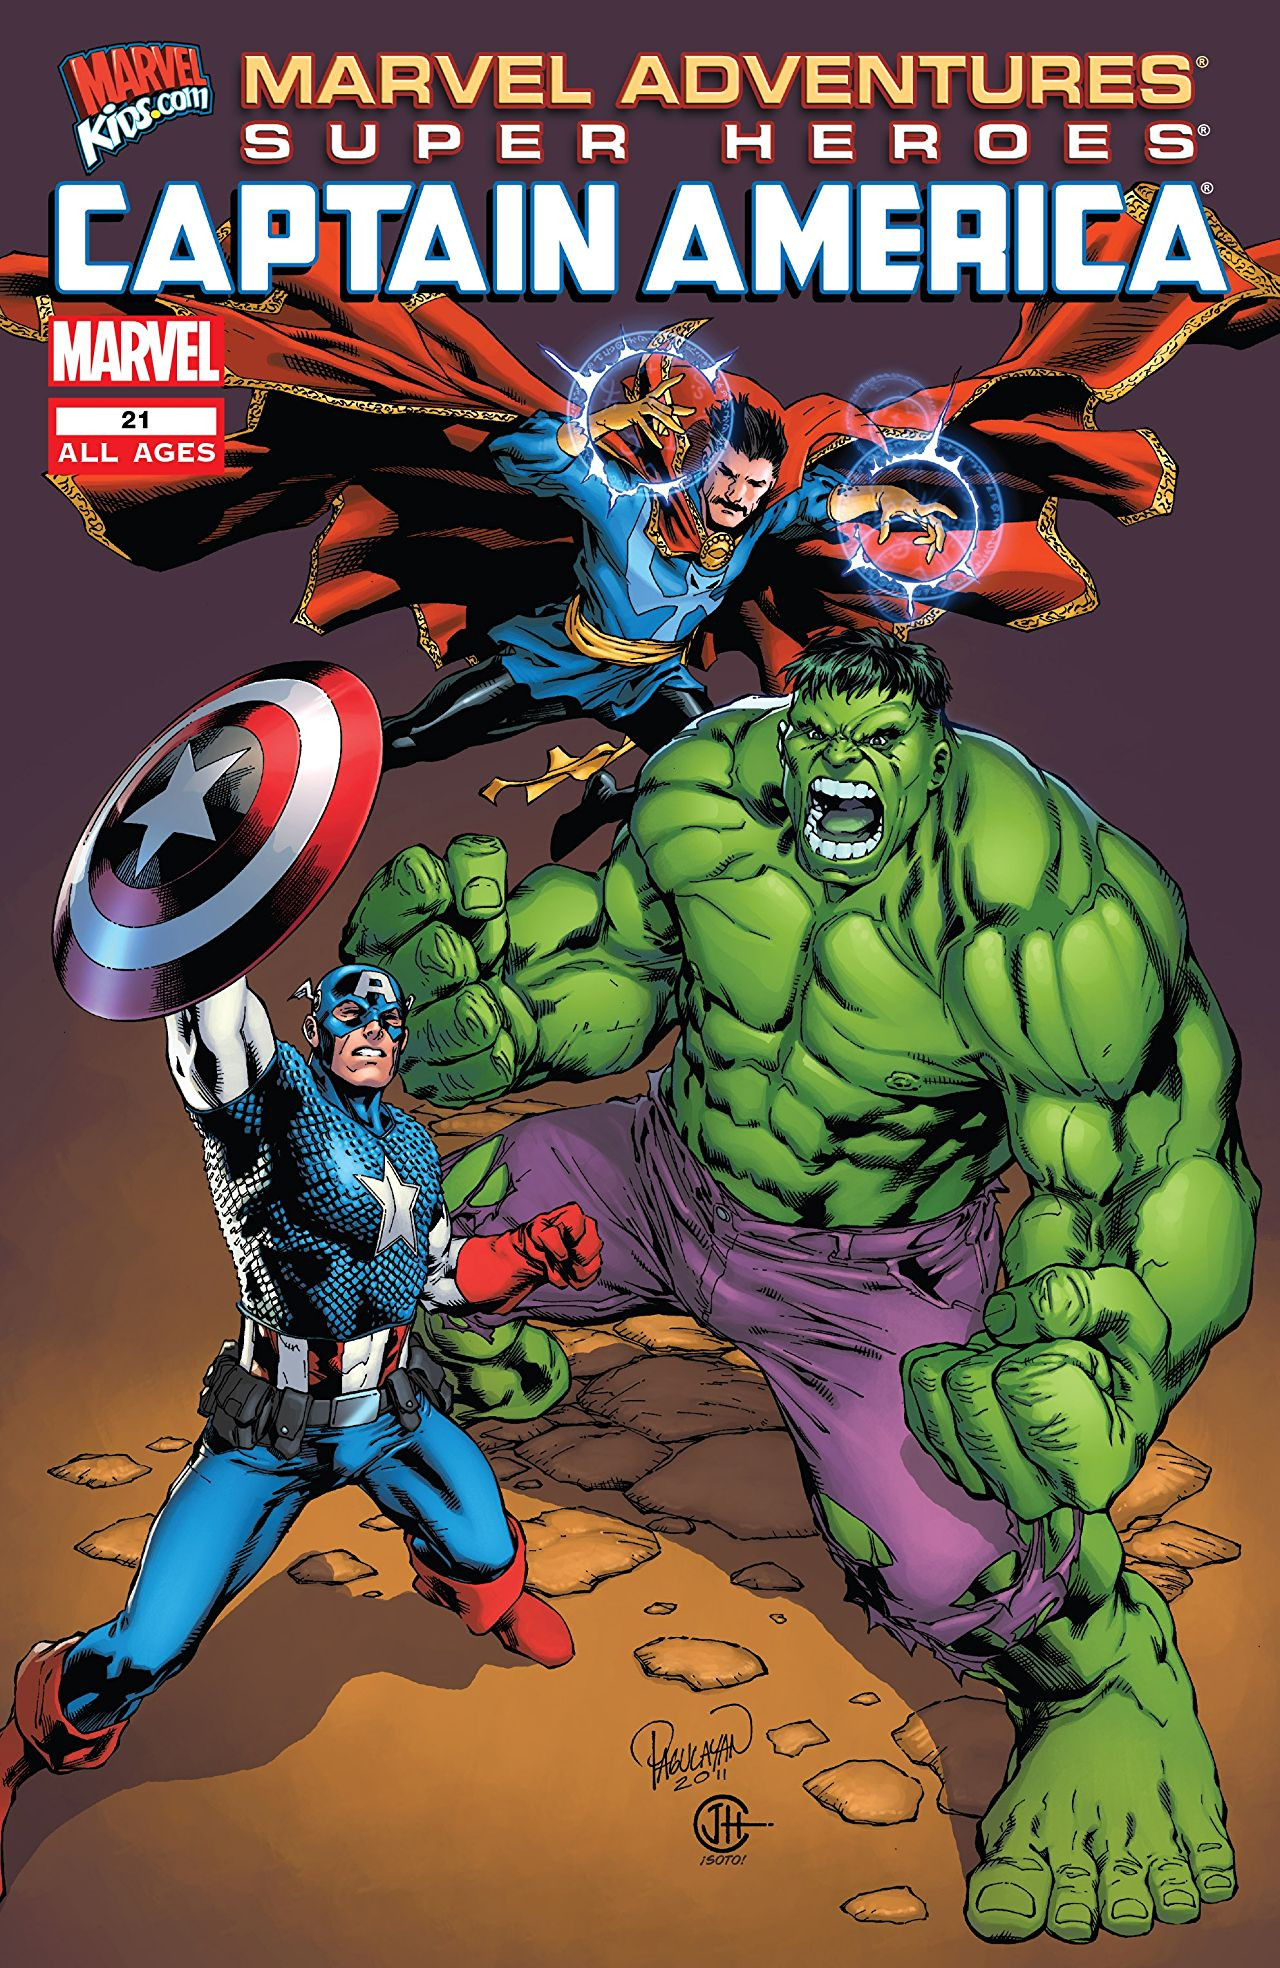 Marvel Adventures: Super Heroes Vol 2 21